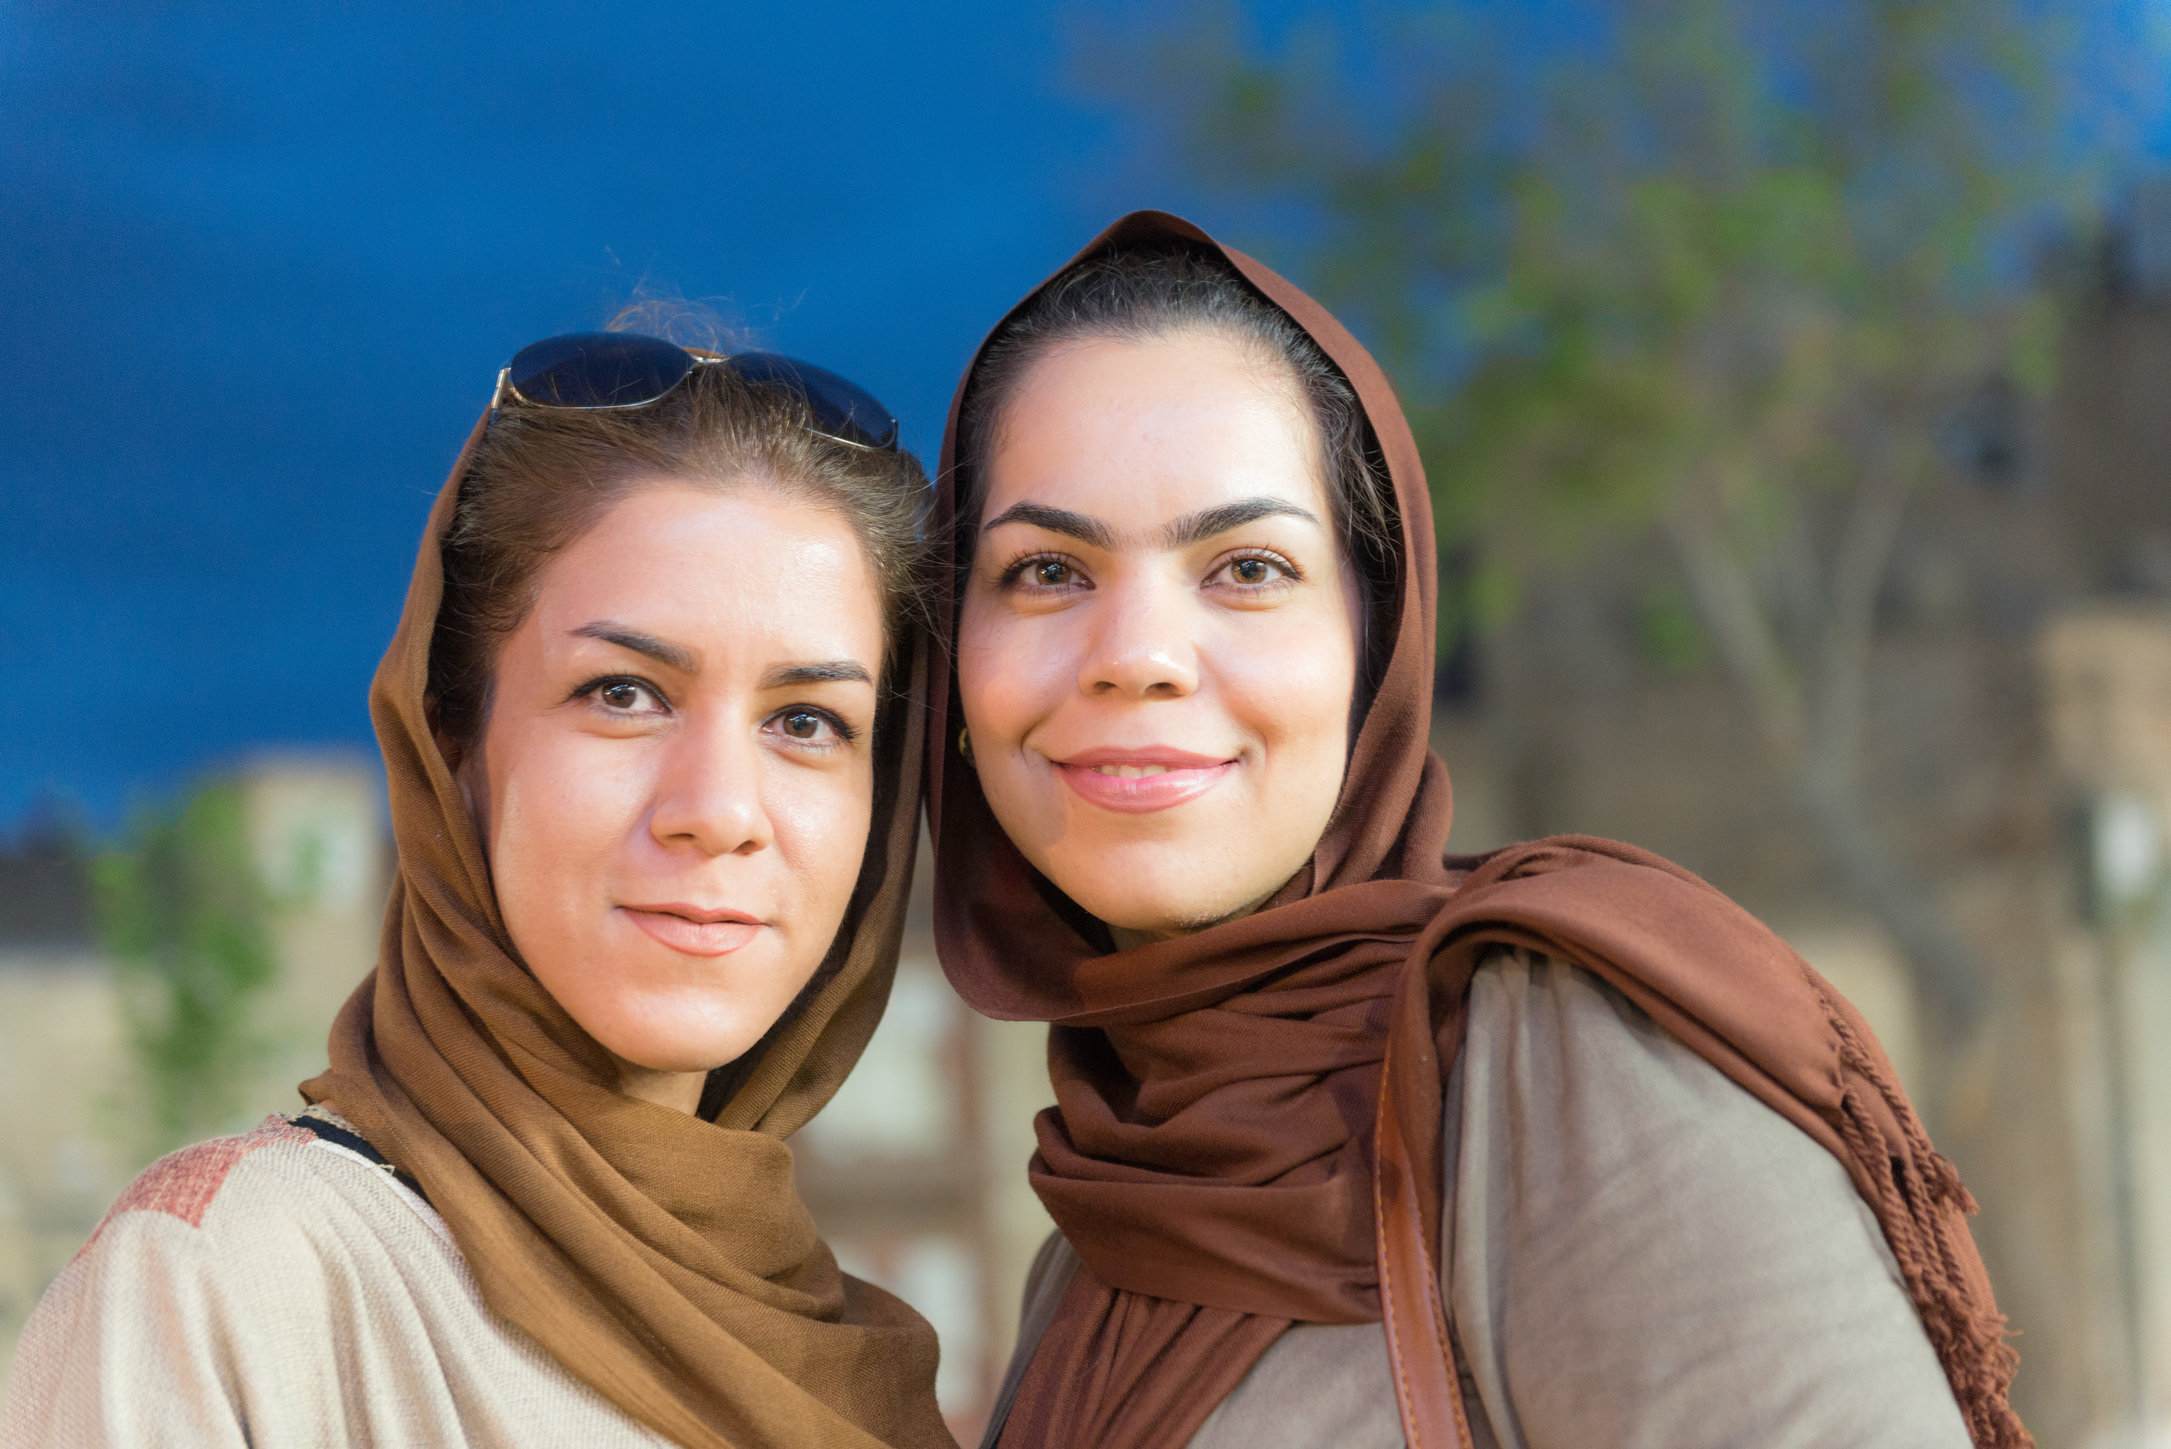 Young women in Yazd